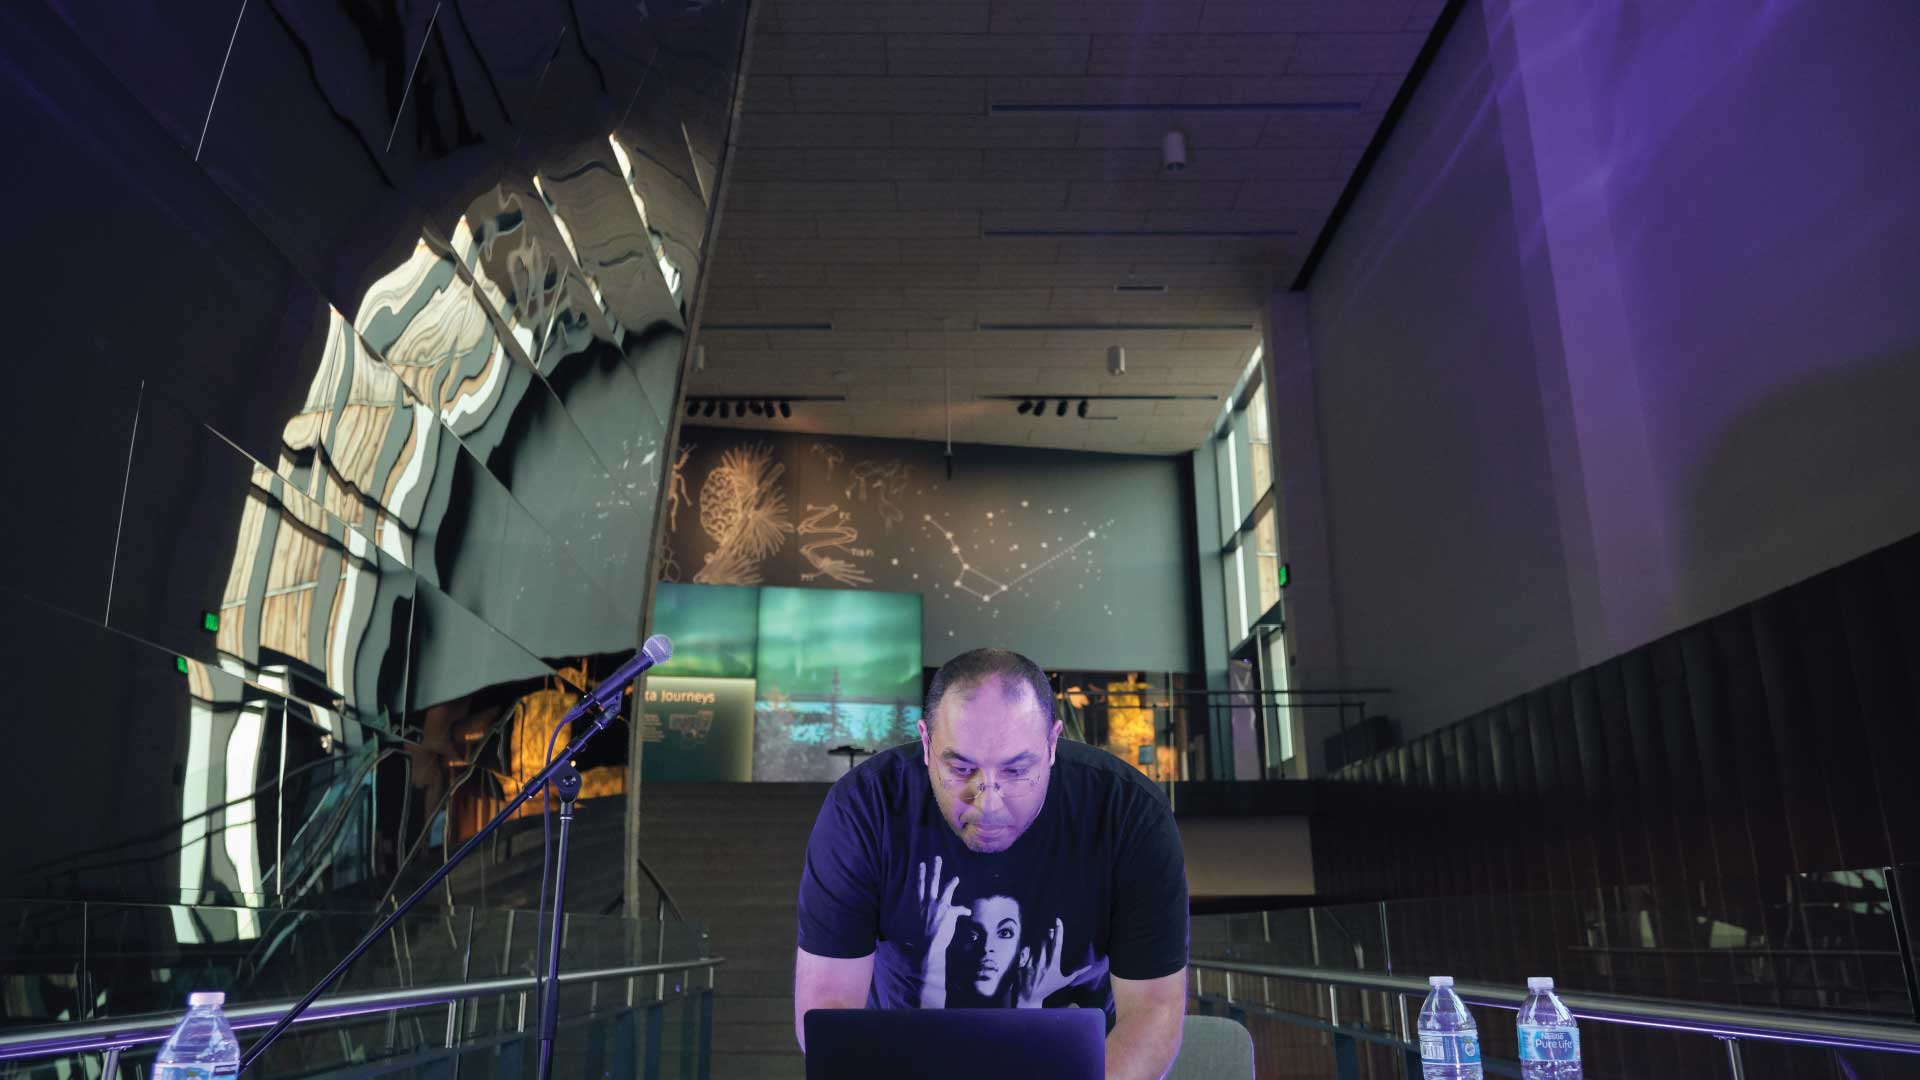 DJ Egypto Knuckles at the museum